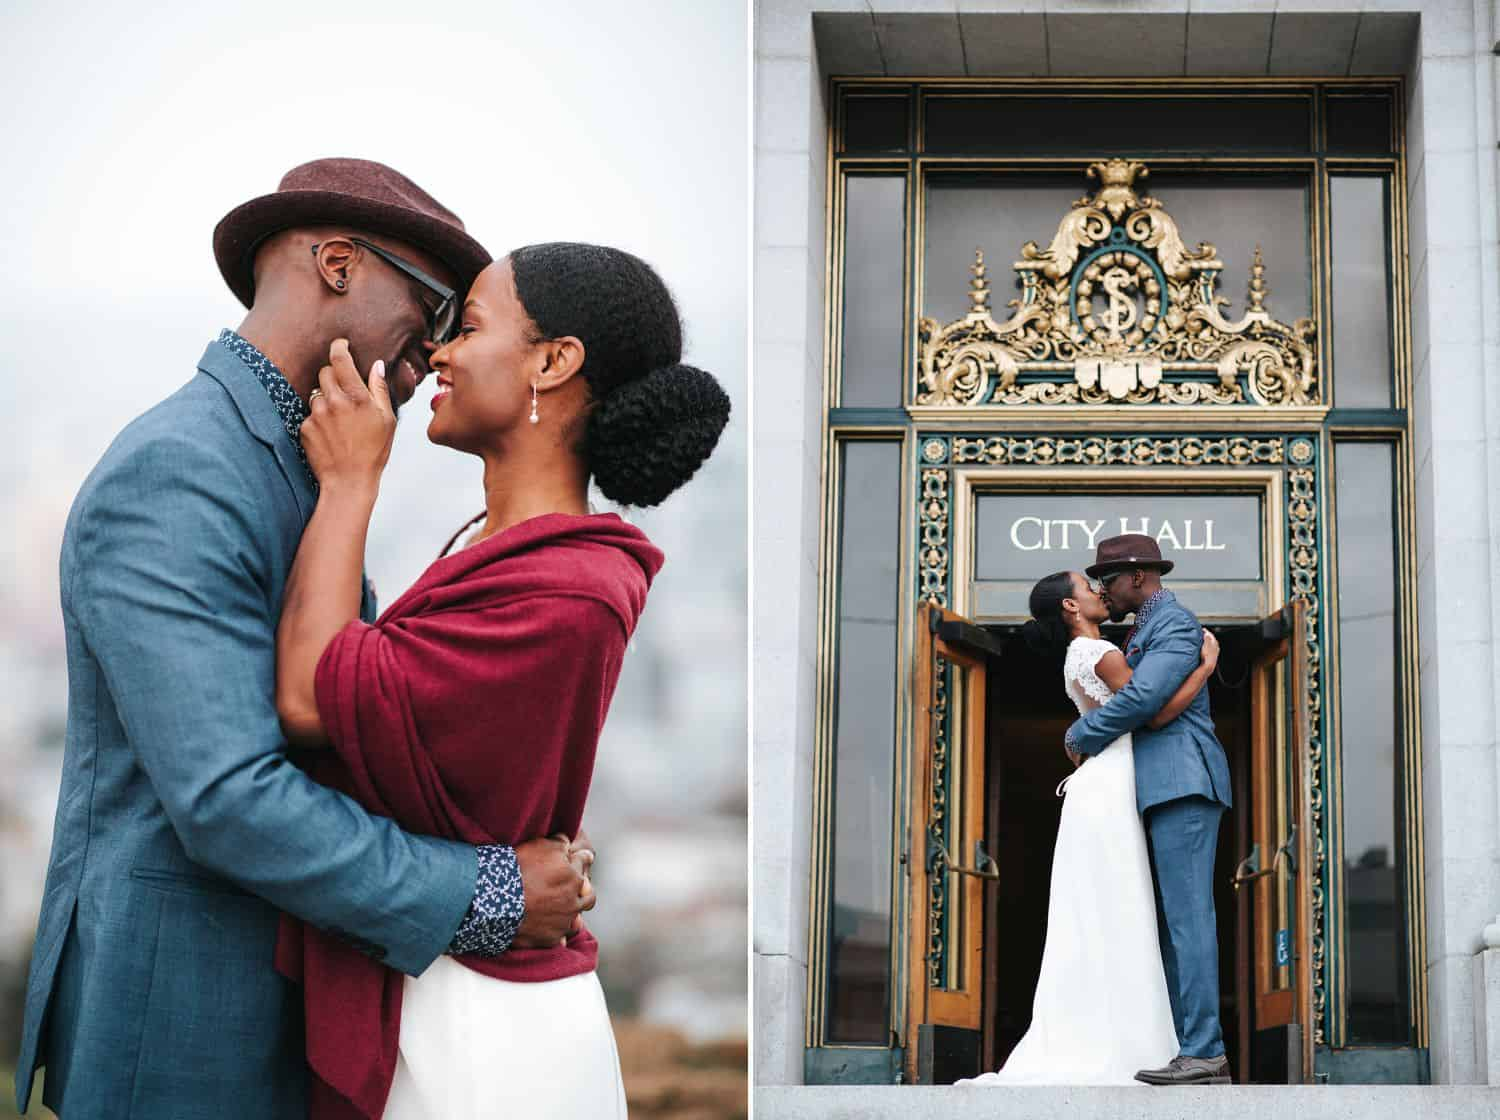 11 Photos Every Wedding Photographer Should Know How to Make: #6 - A Not-Gross Kissing Picture